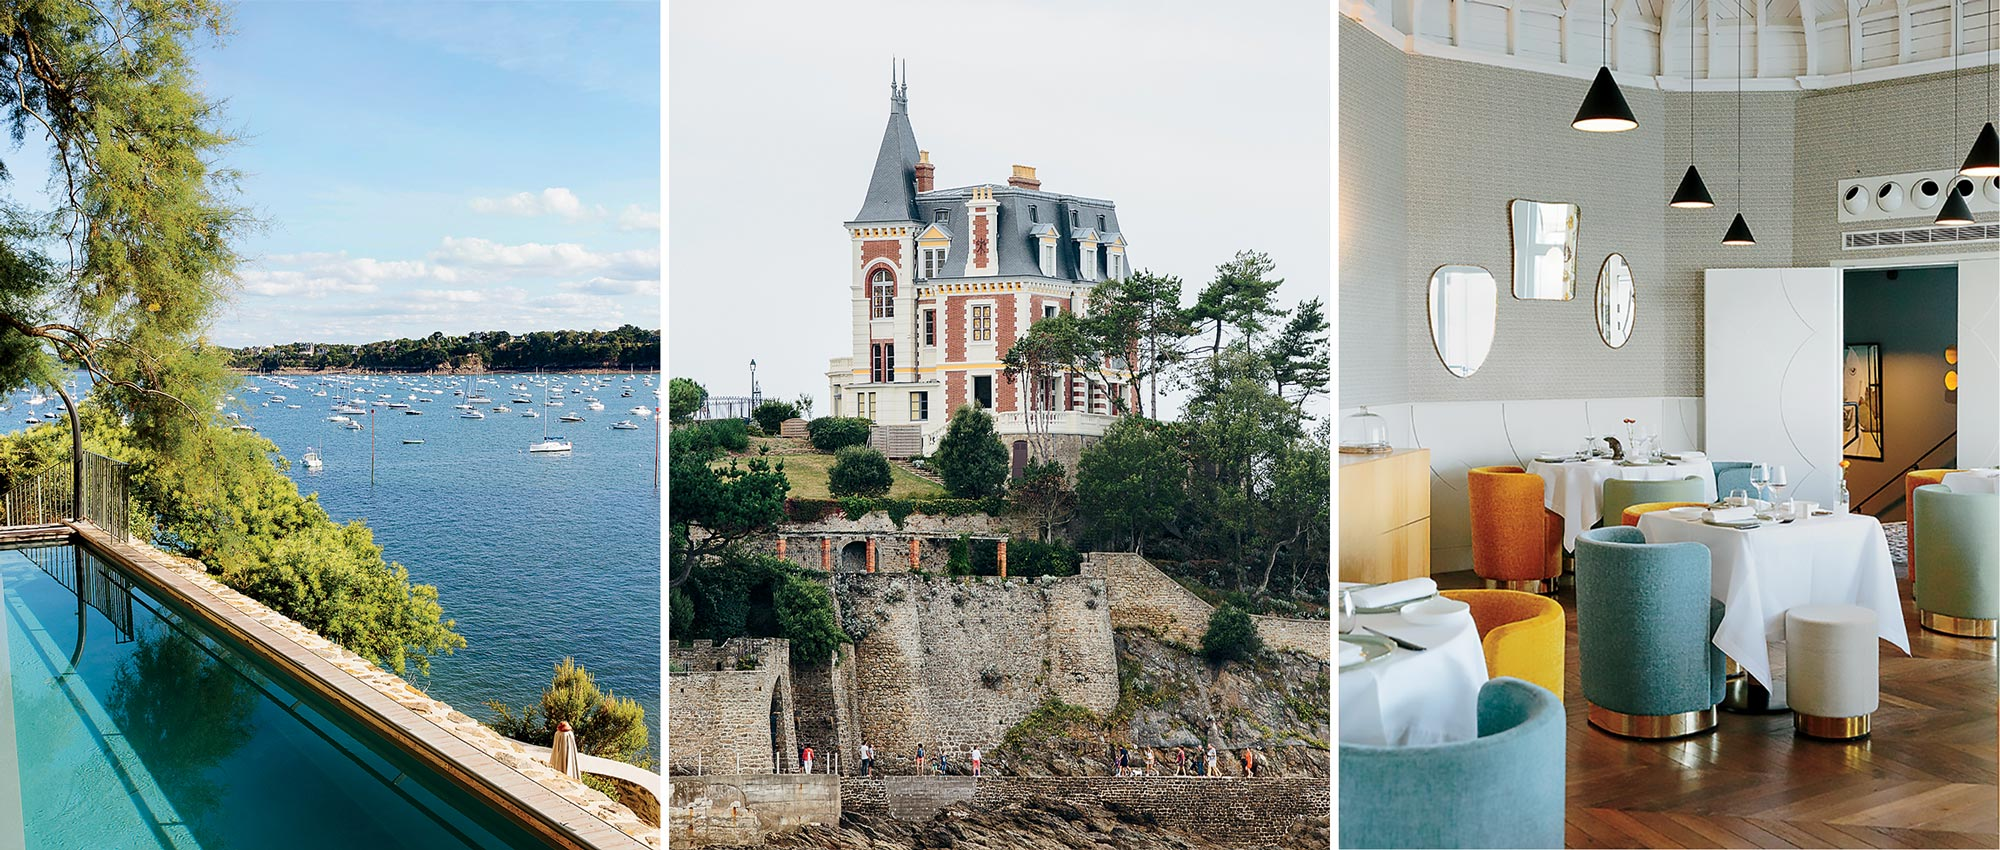 Dinard on Emerald Coast of France